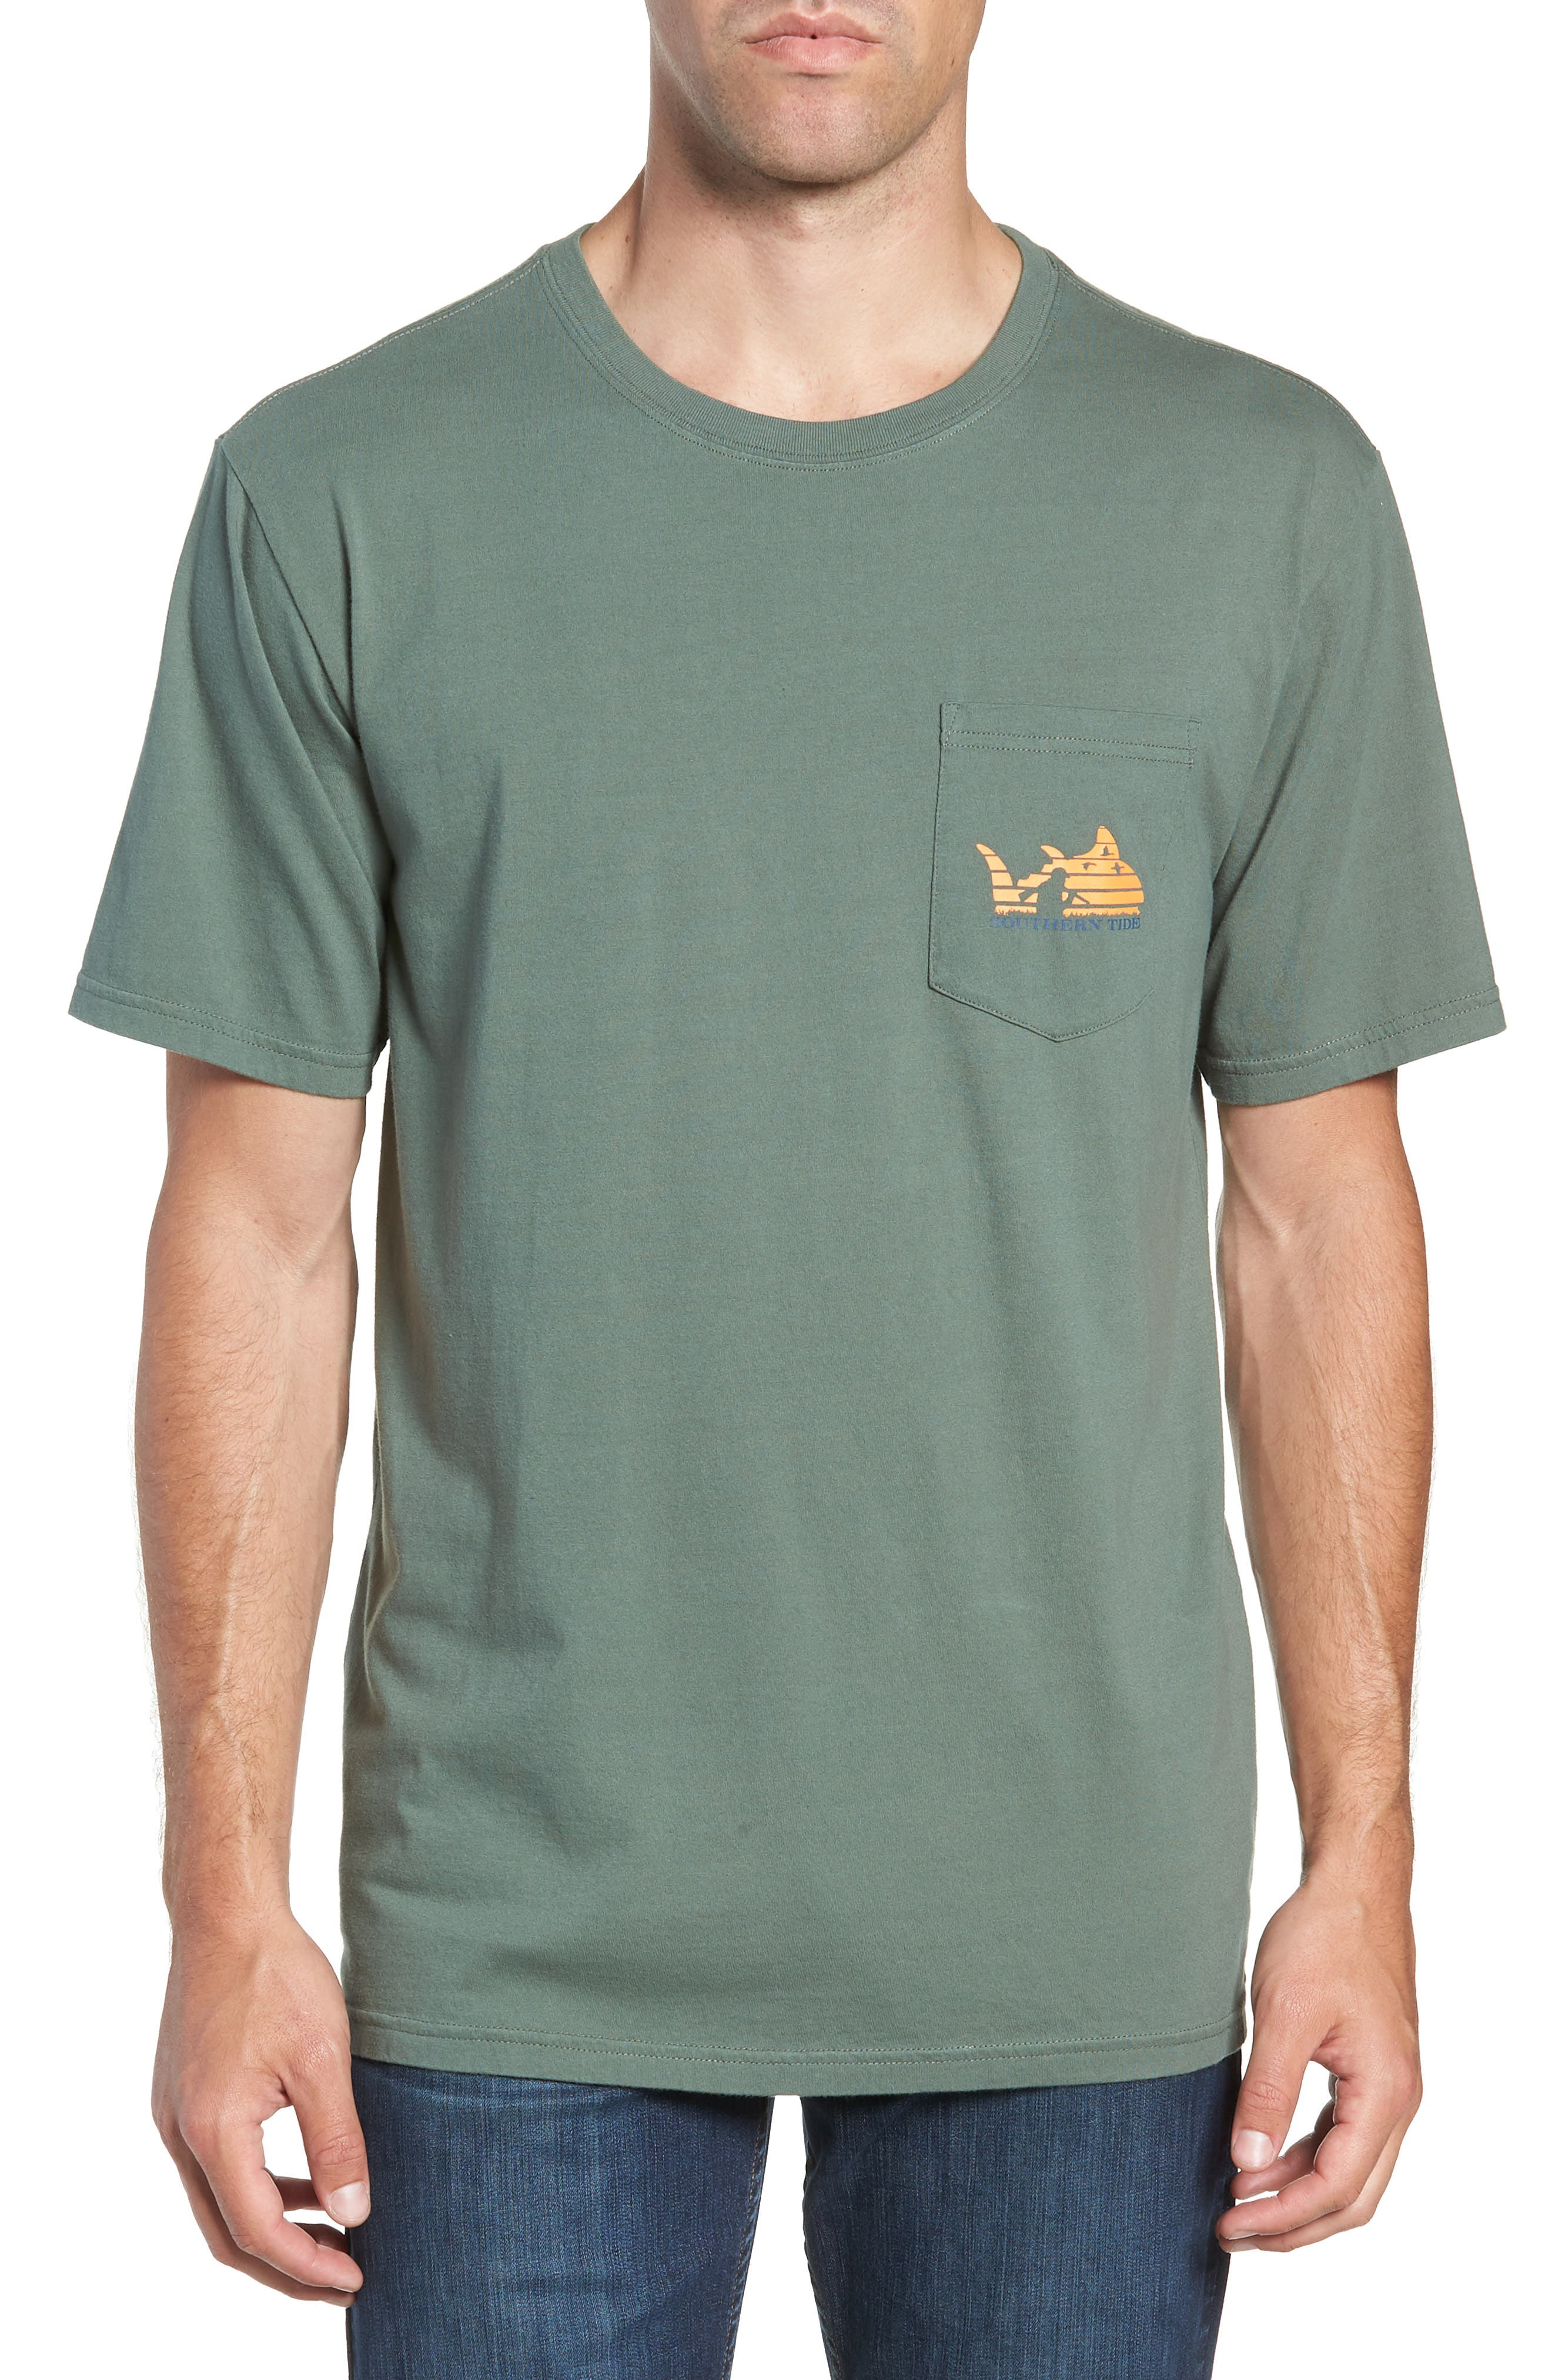 SOUTHERN TIDE SUNSET GRAPHIC POCKET T-SHIRT